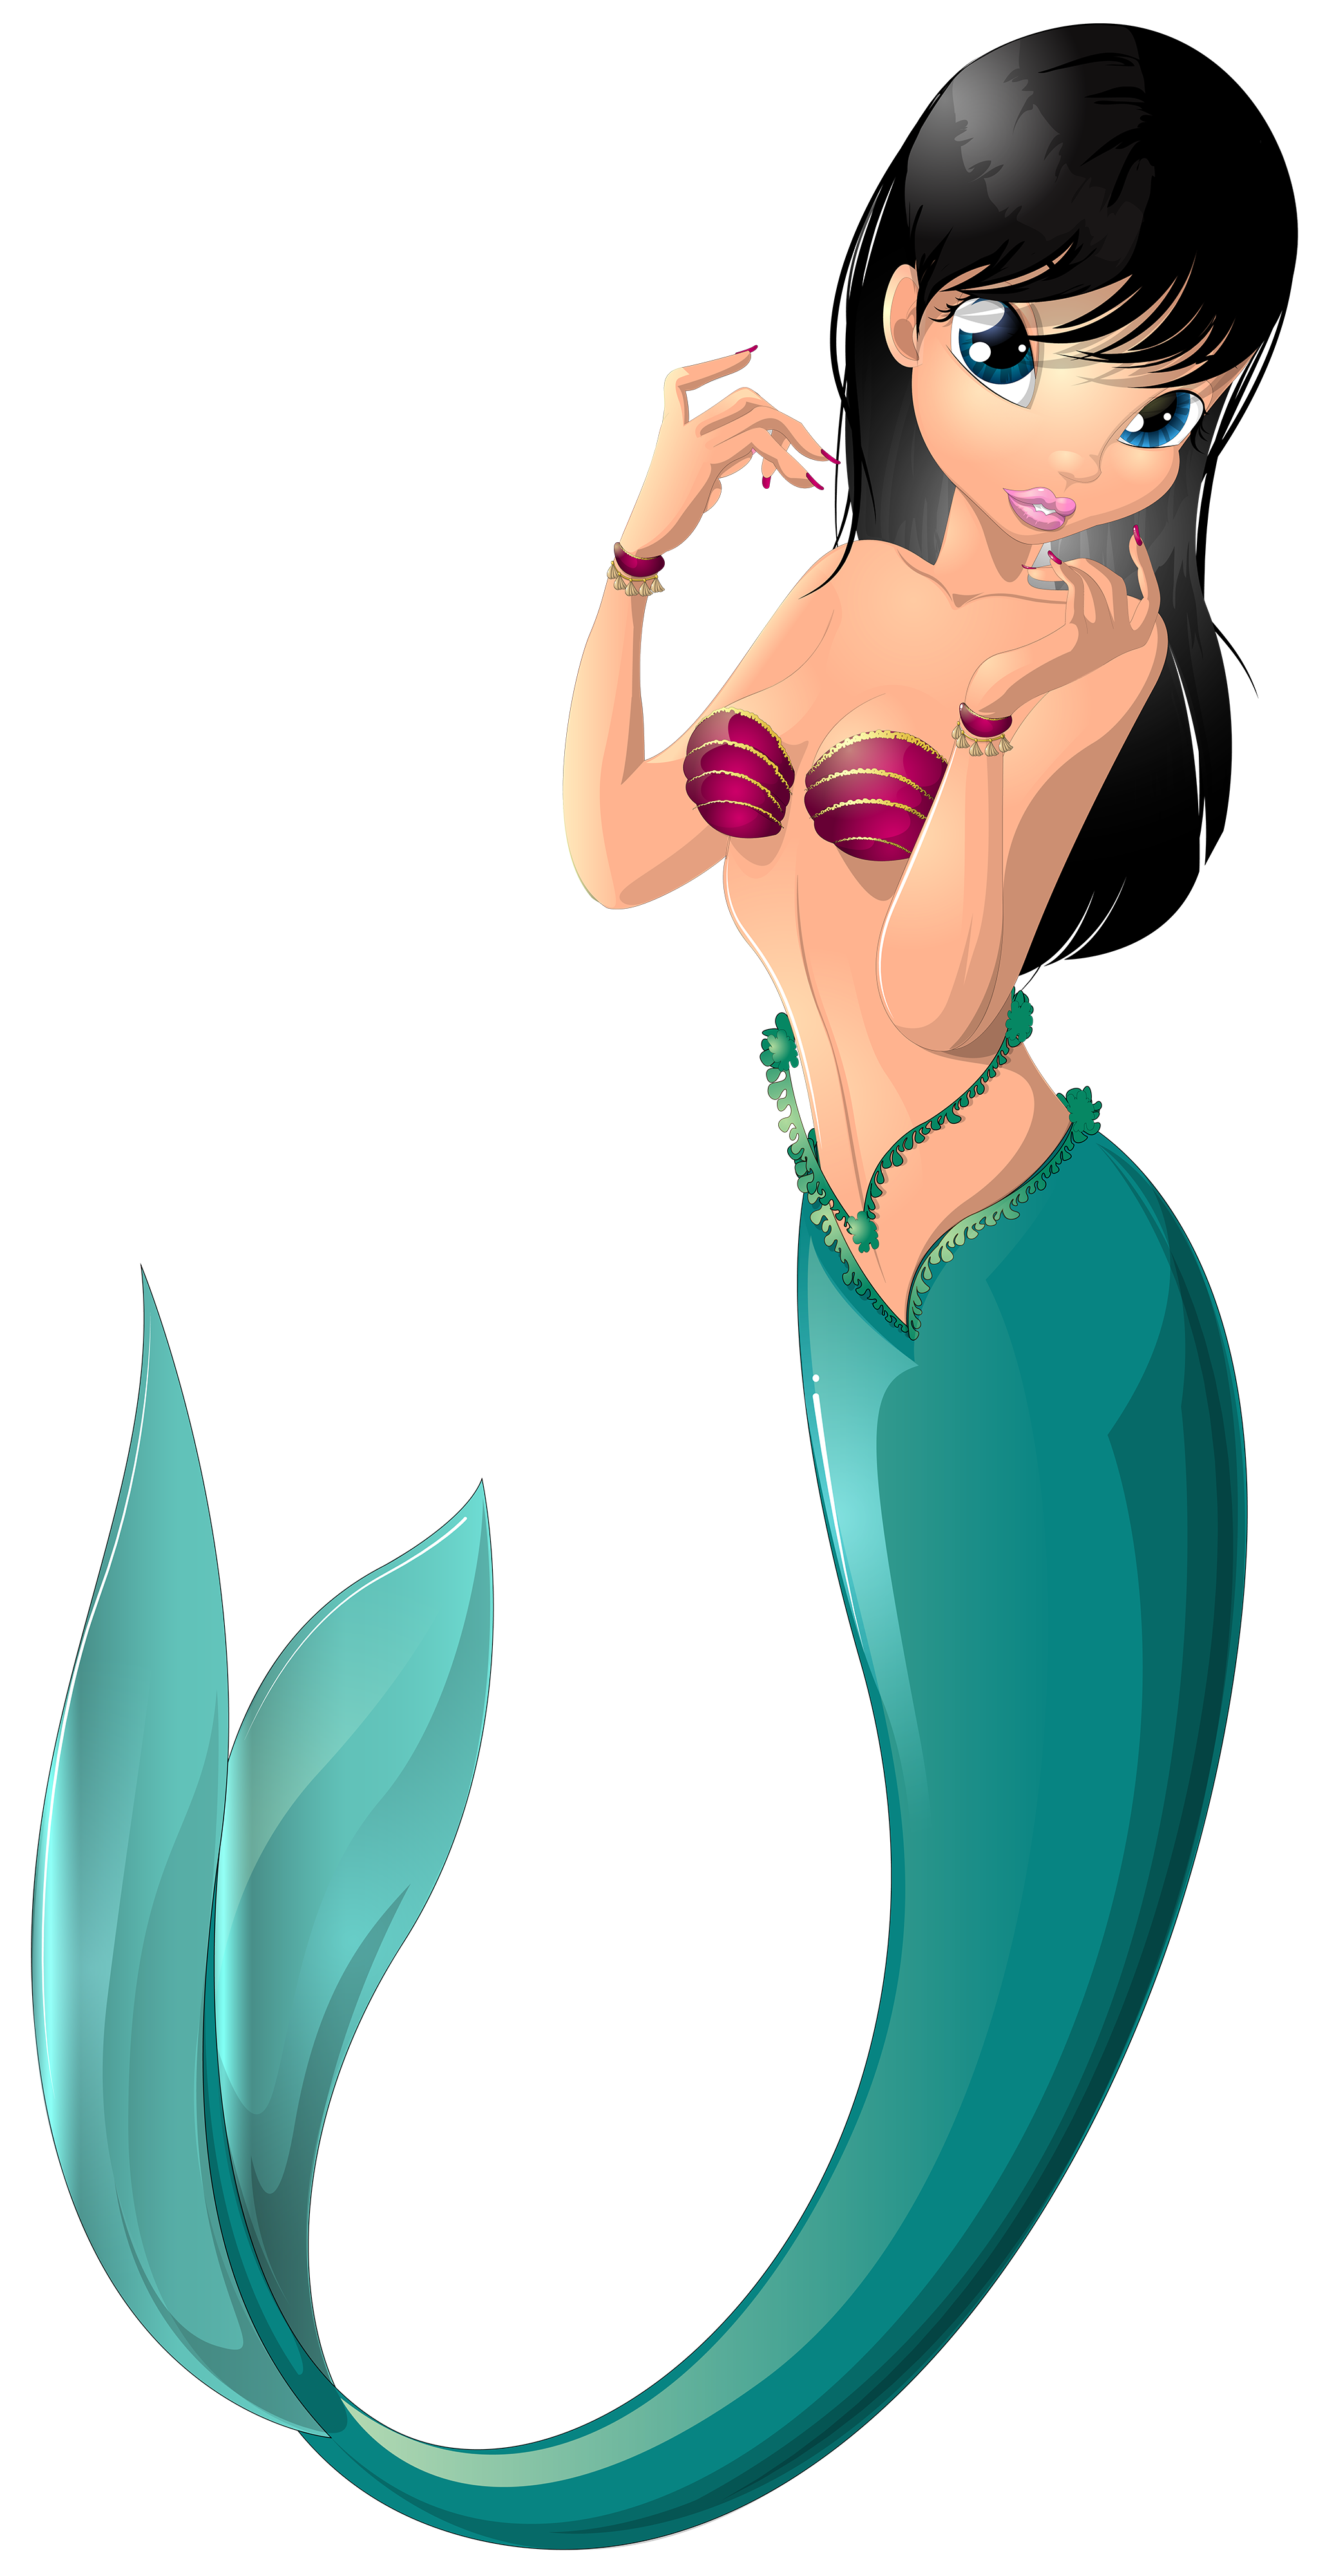 Mermaid png high resolution